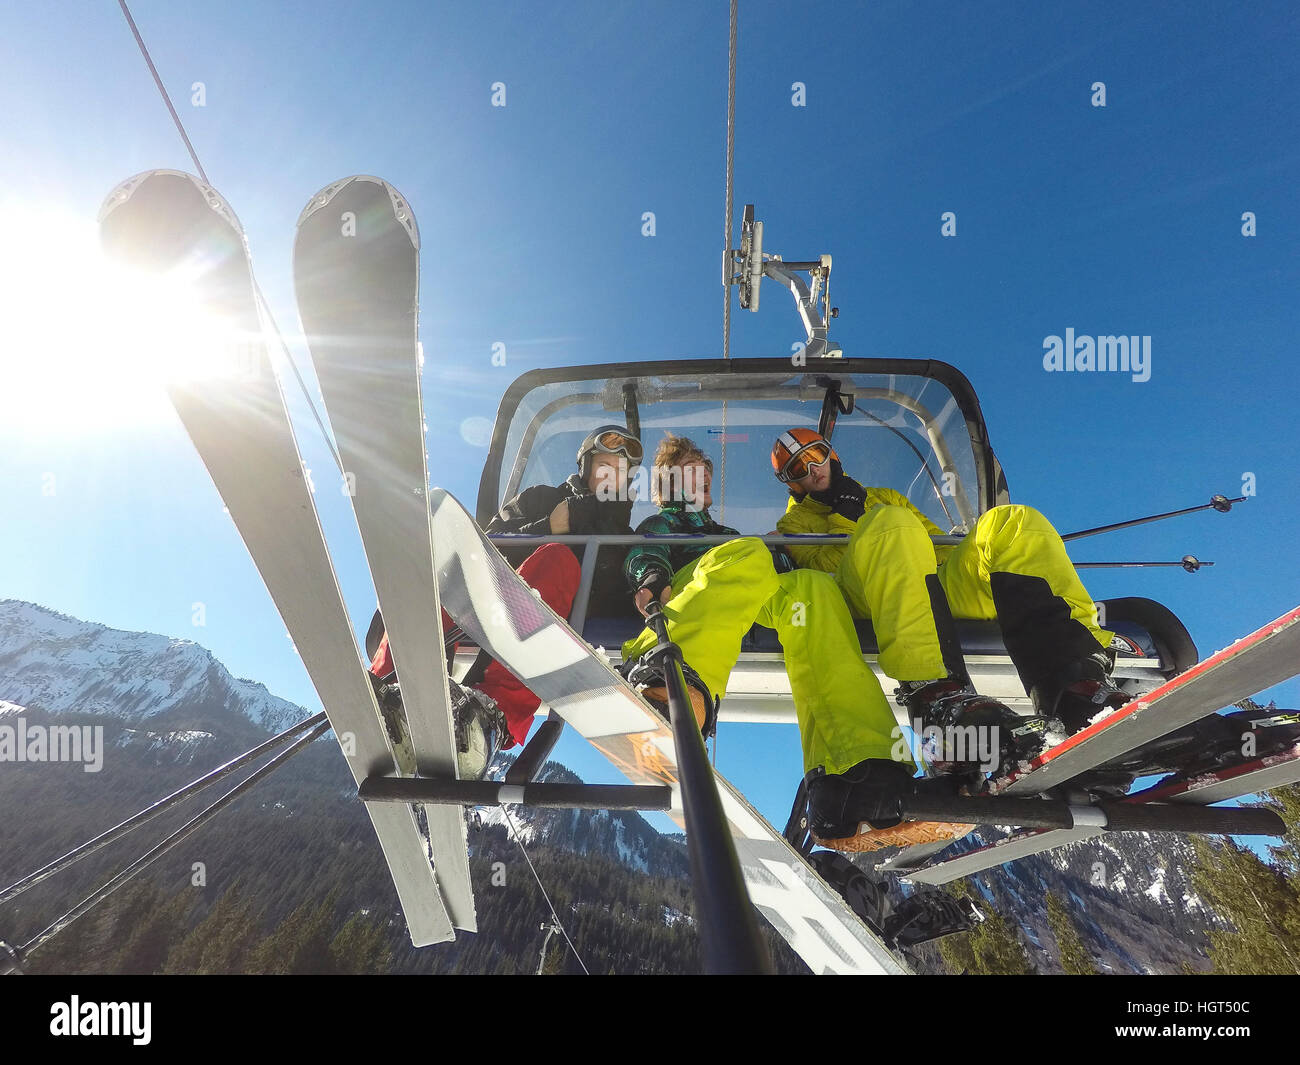 Three teenagers on chairlift with skis and snowboard, taking selfie, Spitzingsee ski resort, Bavaria, Germany - Stock Image